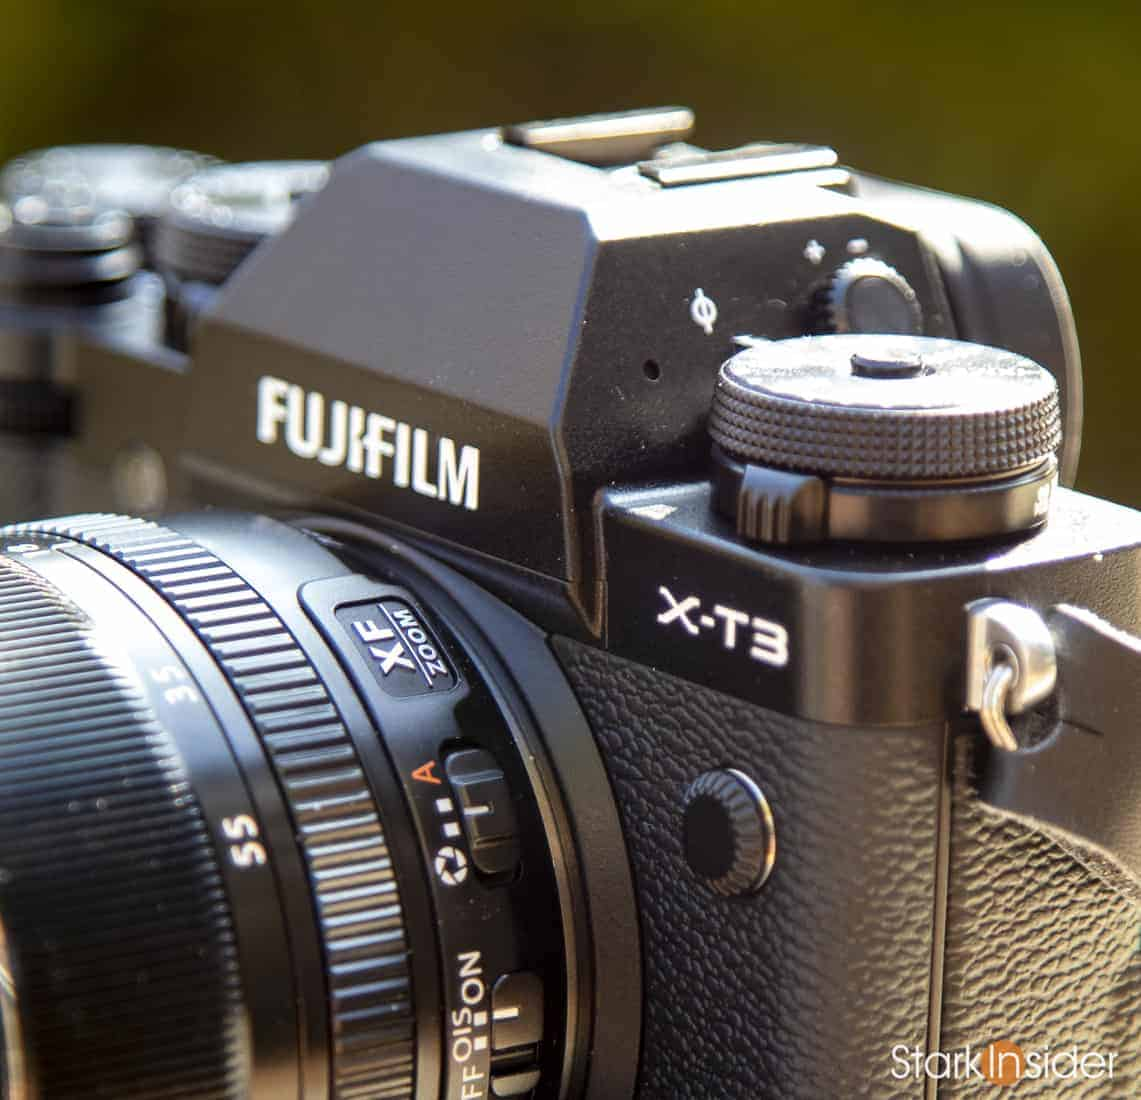 Camera Review: Fujifilm X-T3 awarded Gold (88%) by DPReview